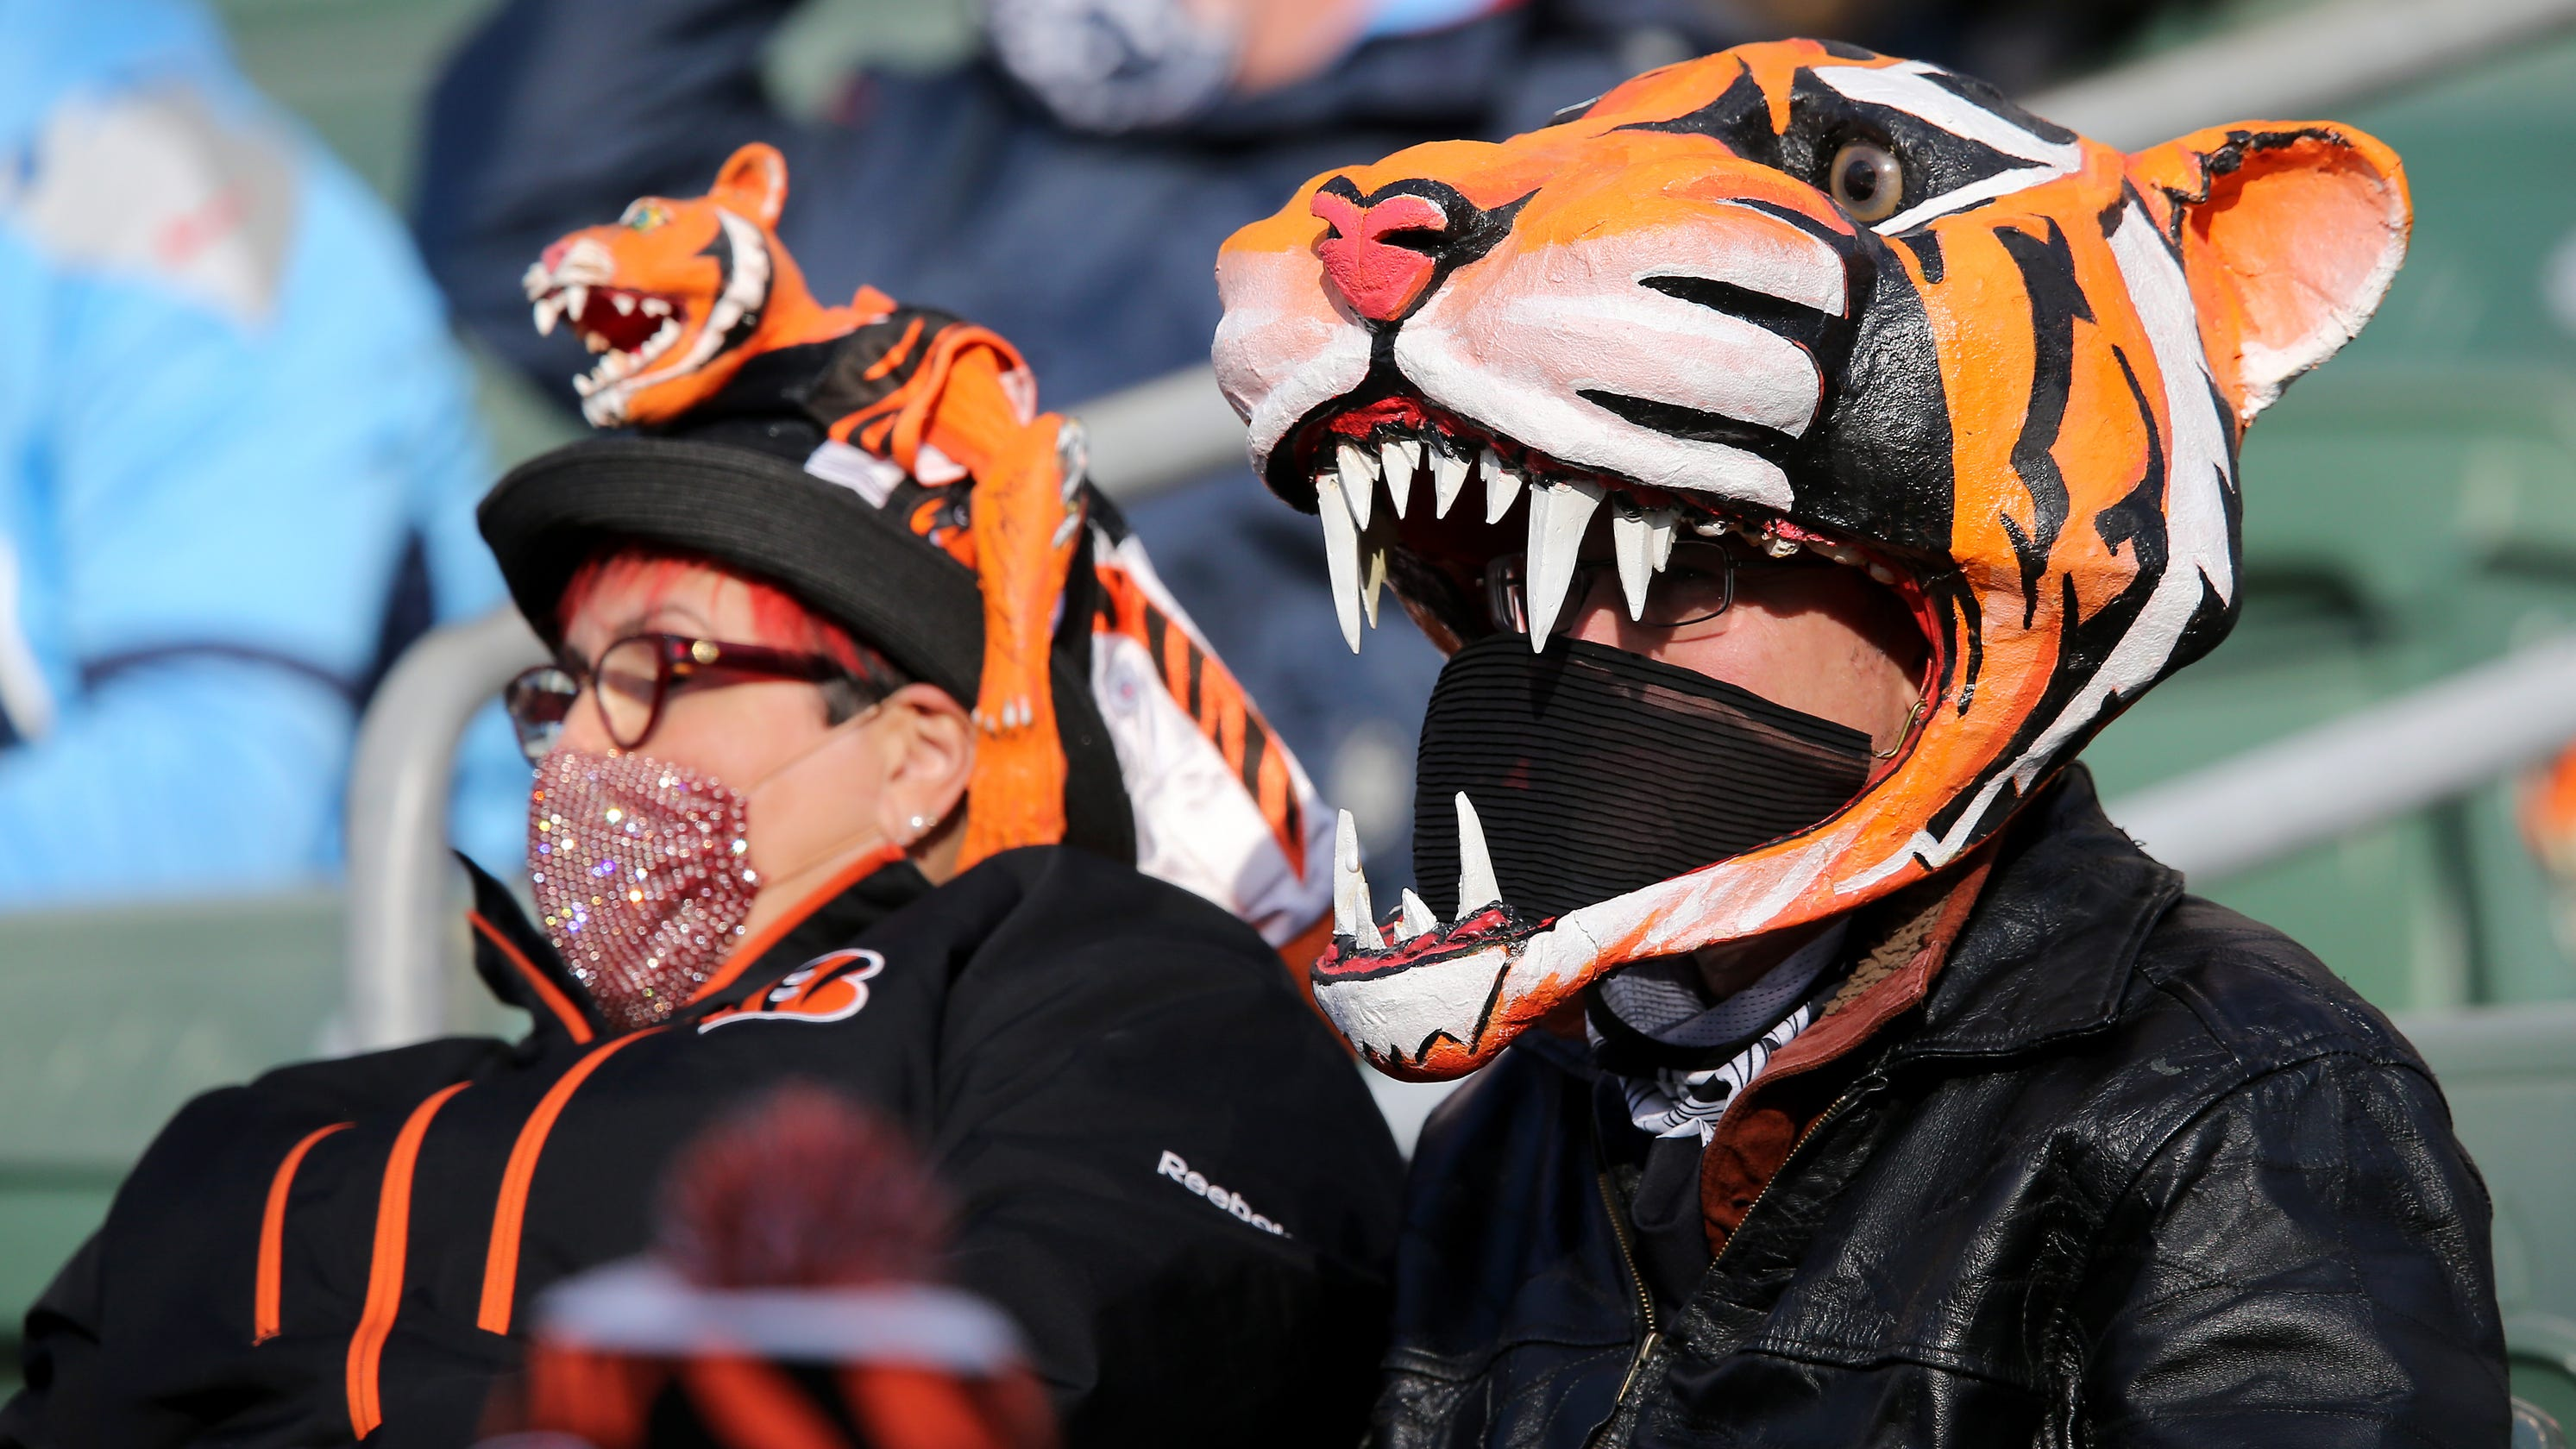 Bengals to reveal new uniforms, mayoral debate and more to know about this week